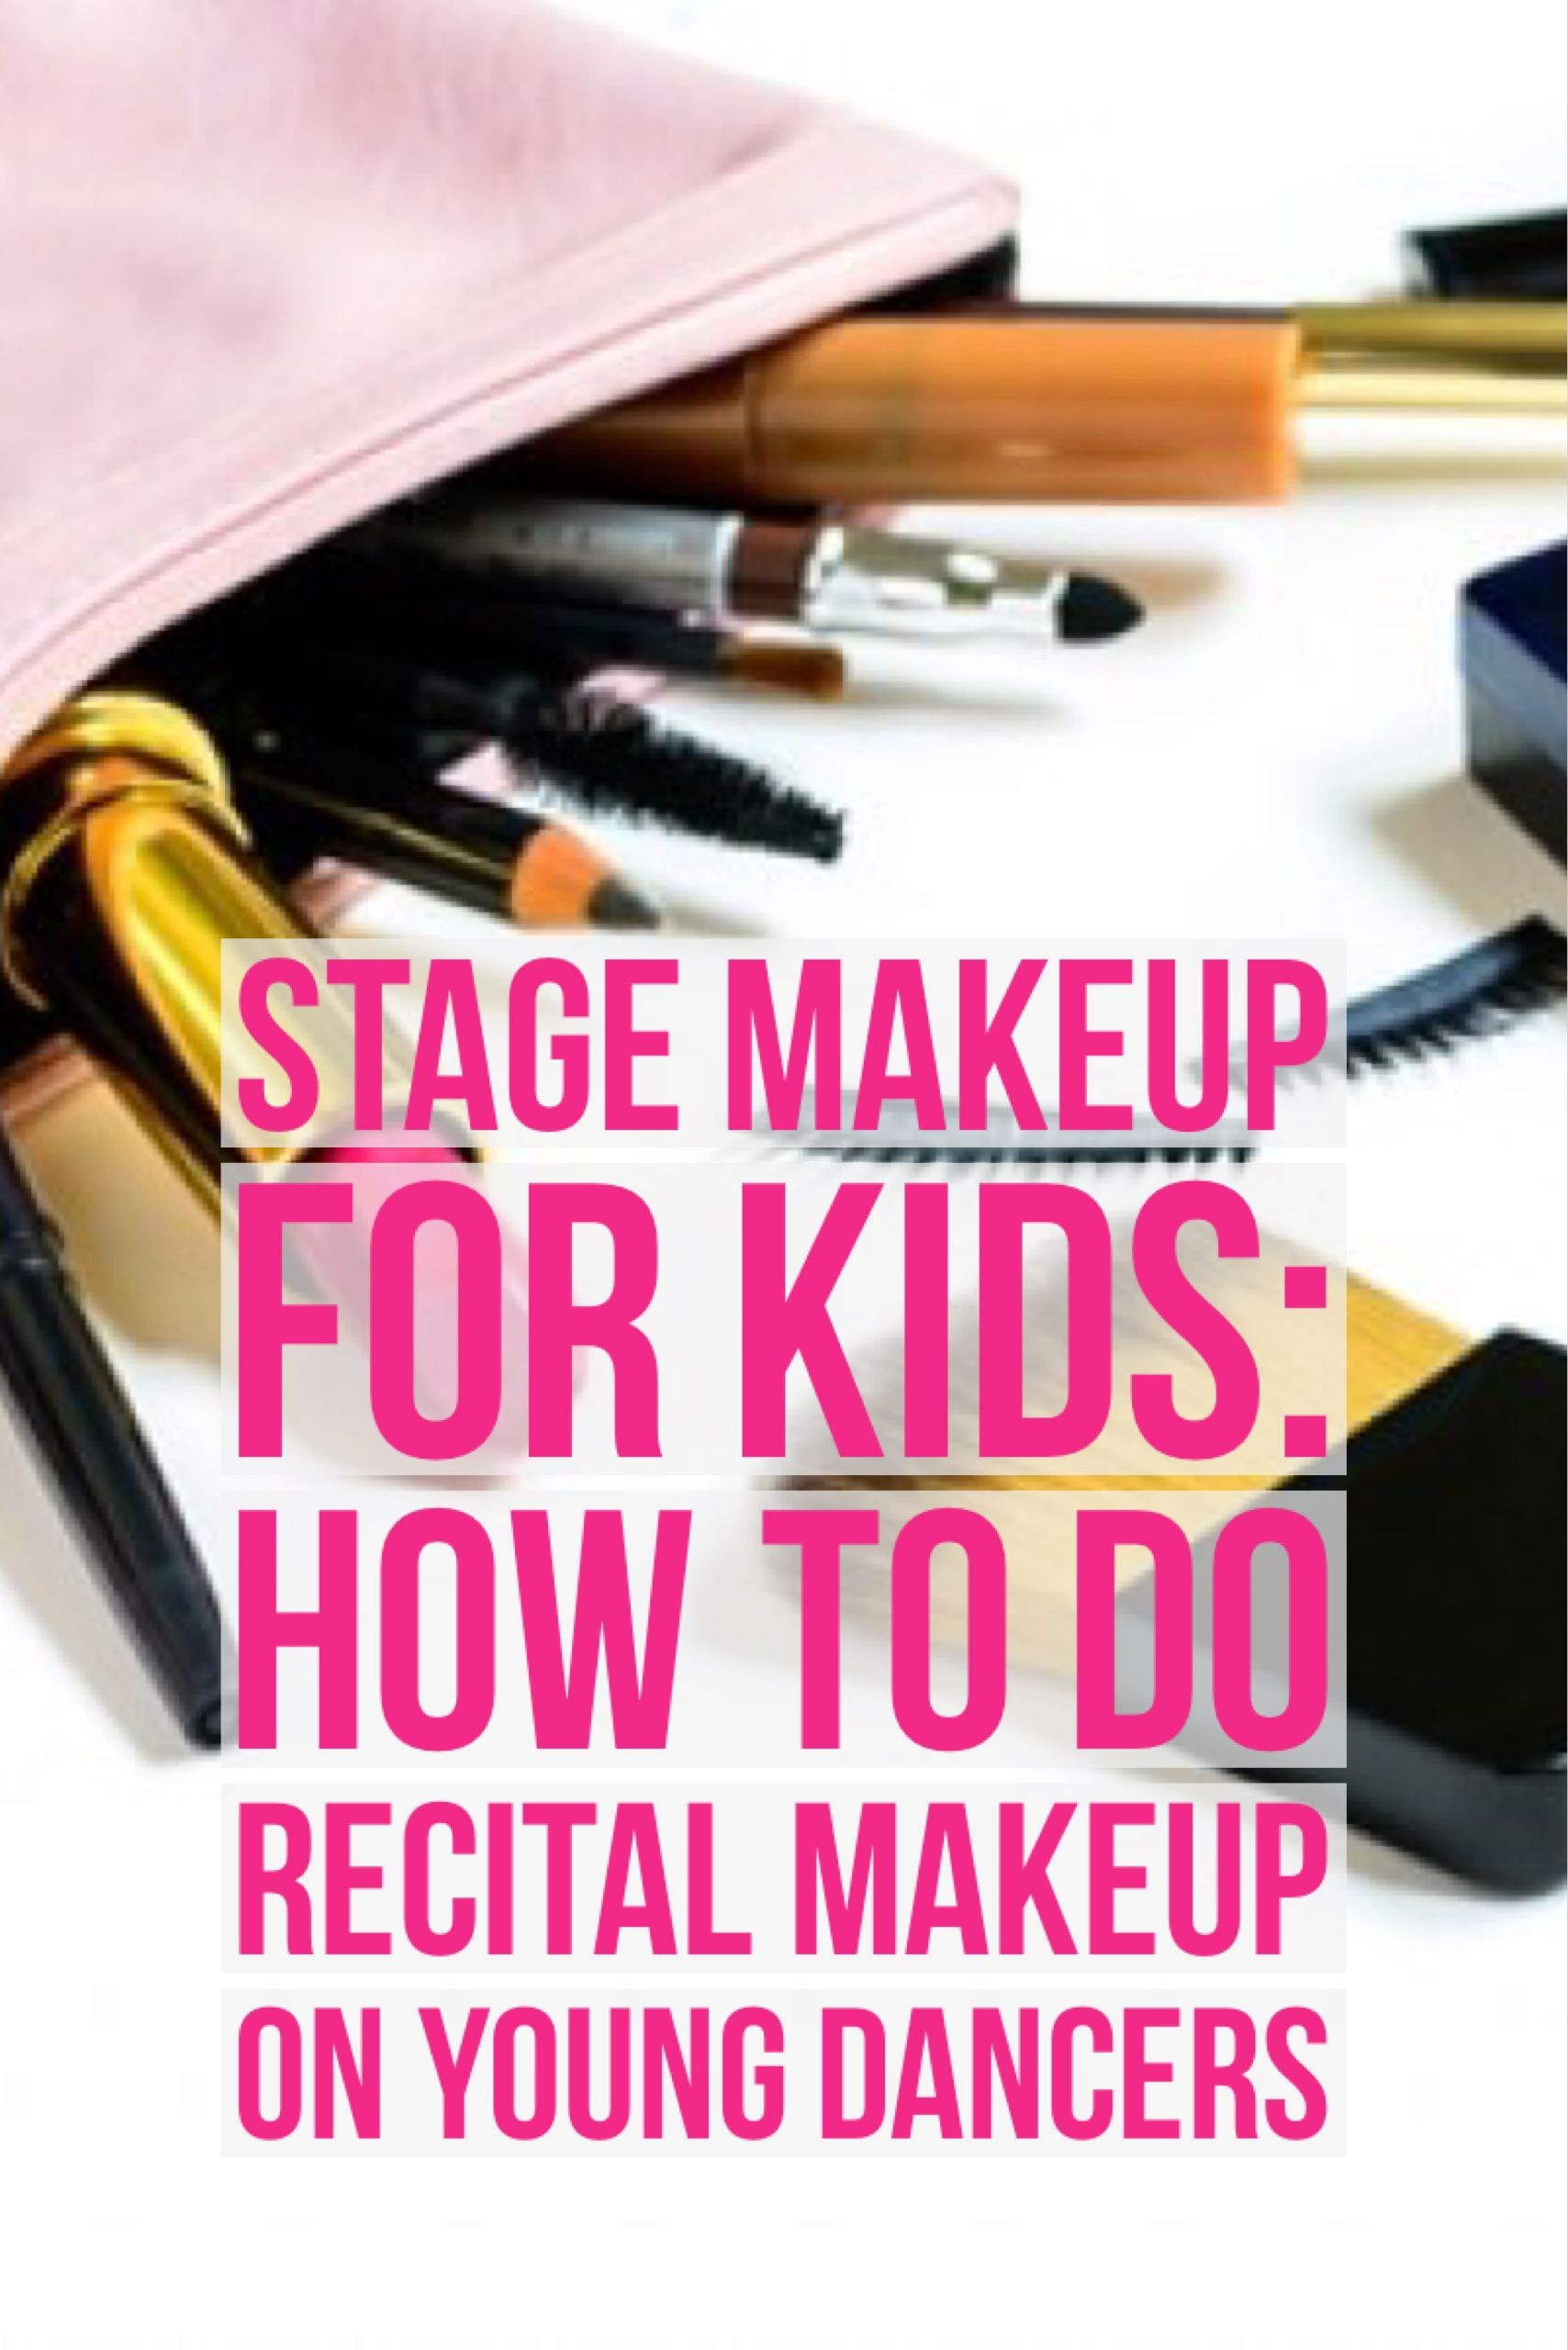 Stage Makeup For Kids How To Do Recital Makeup On Young Dancers